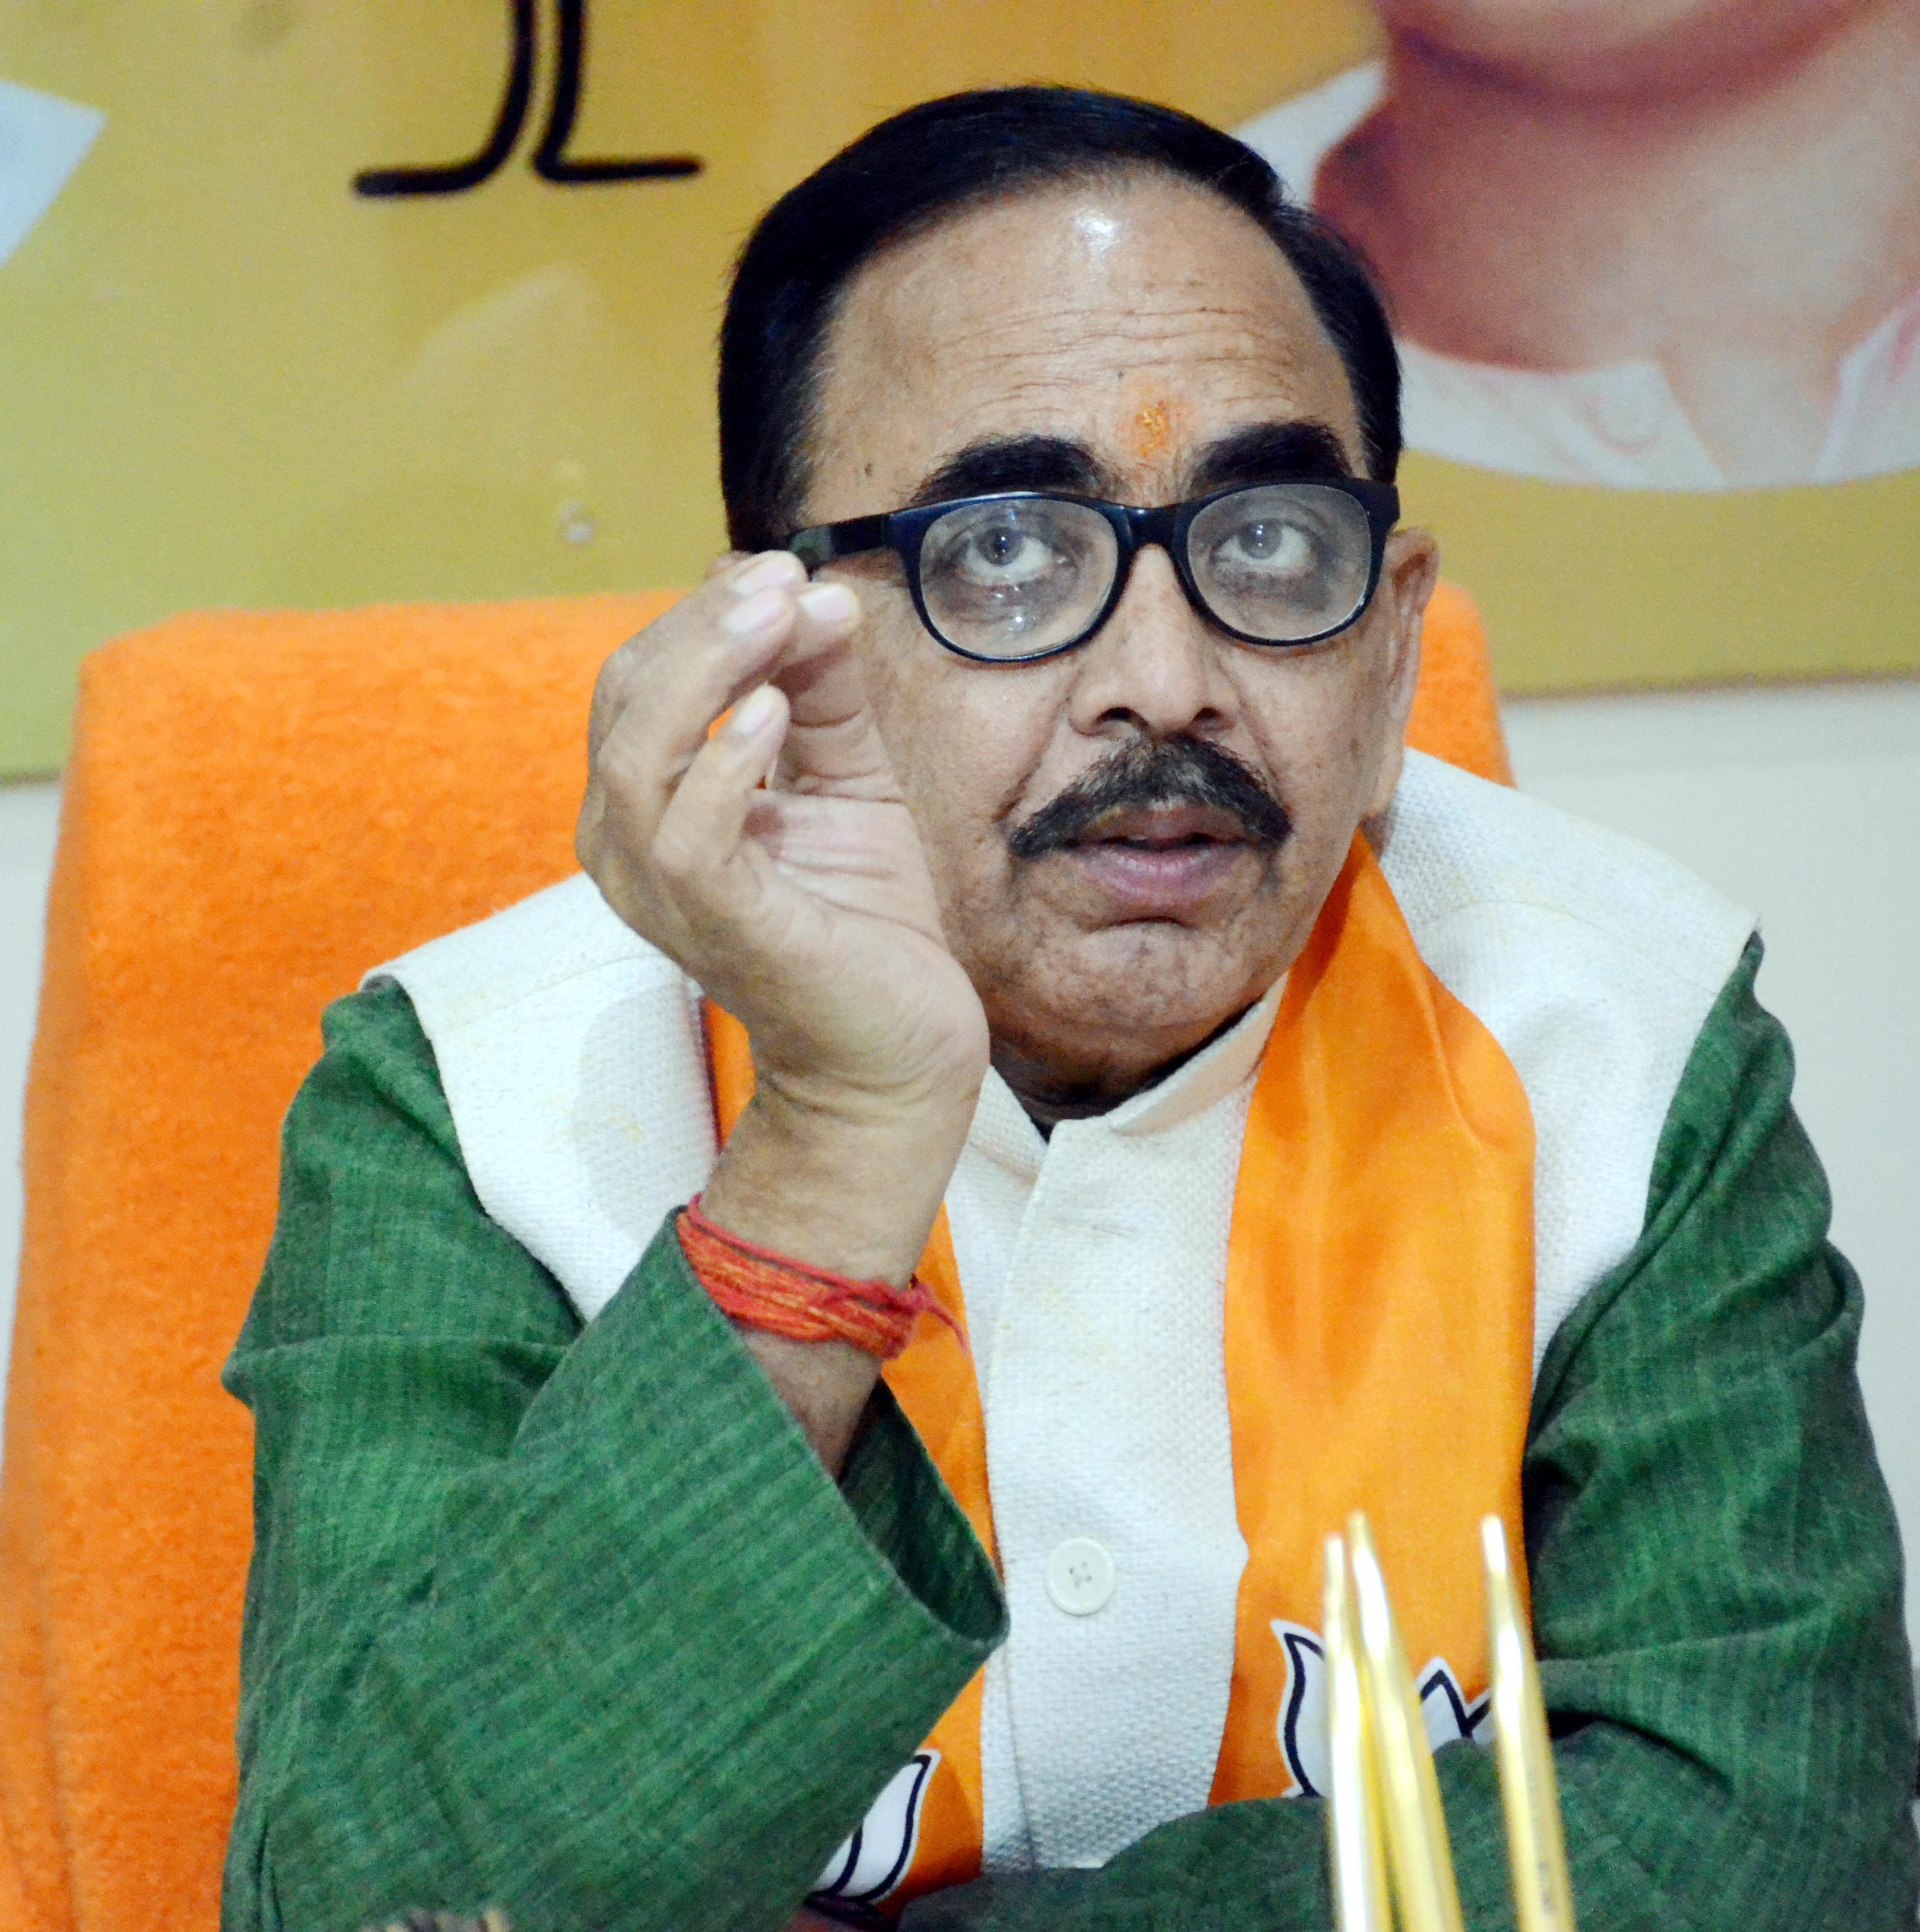 Avatar 2 Yadav: UP BJP Chief Mahendra Nath Pandey Says 'Opposition Is